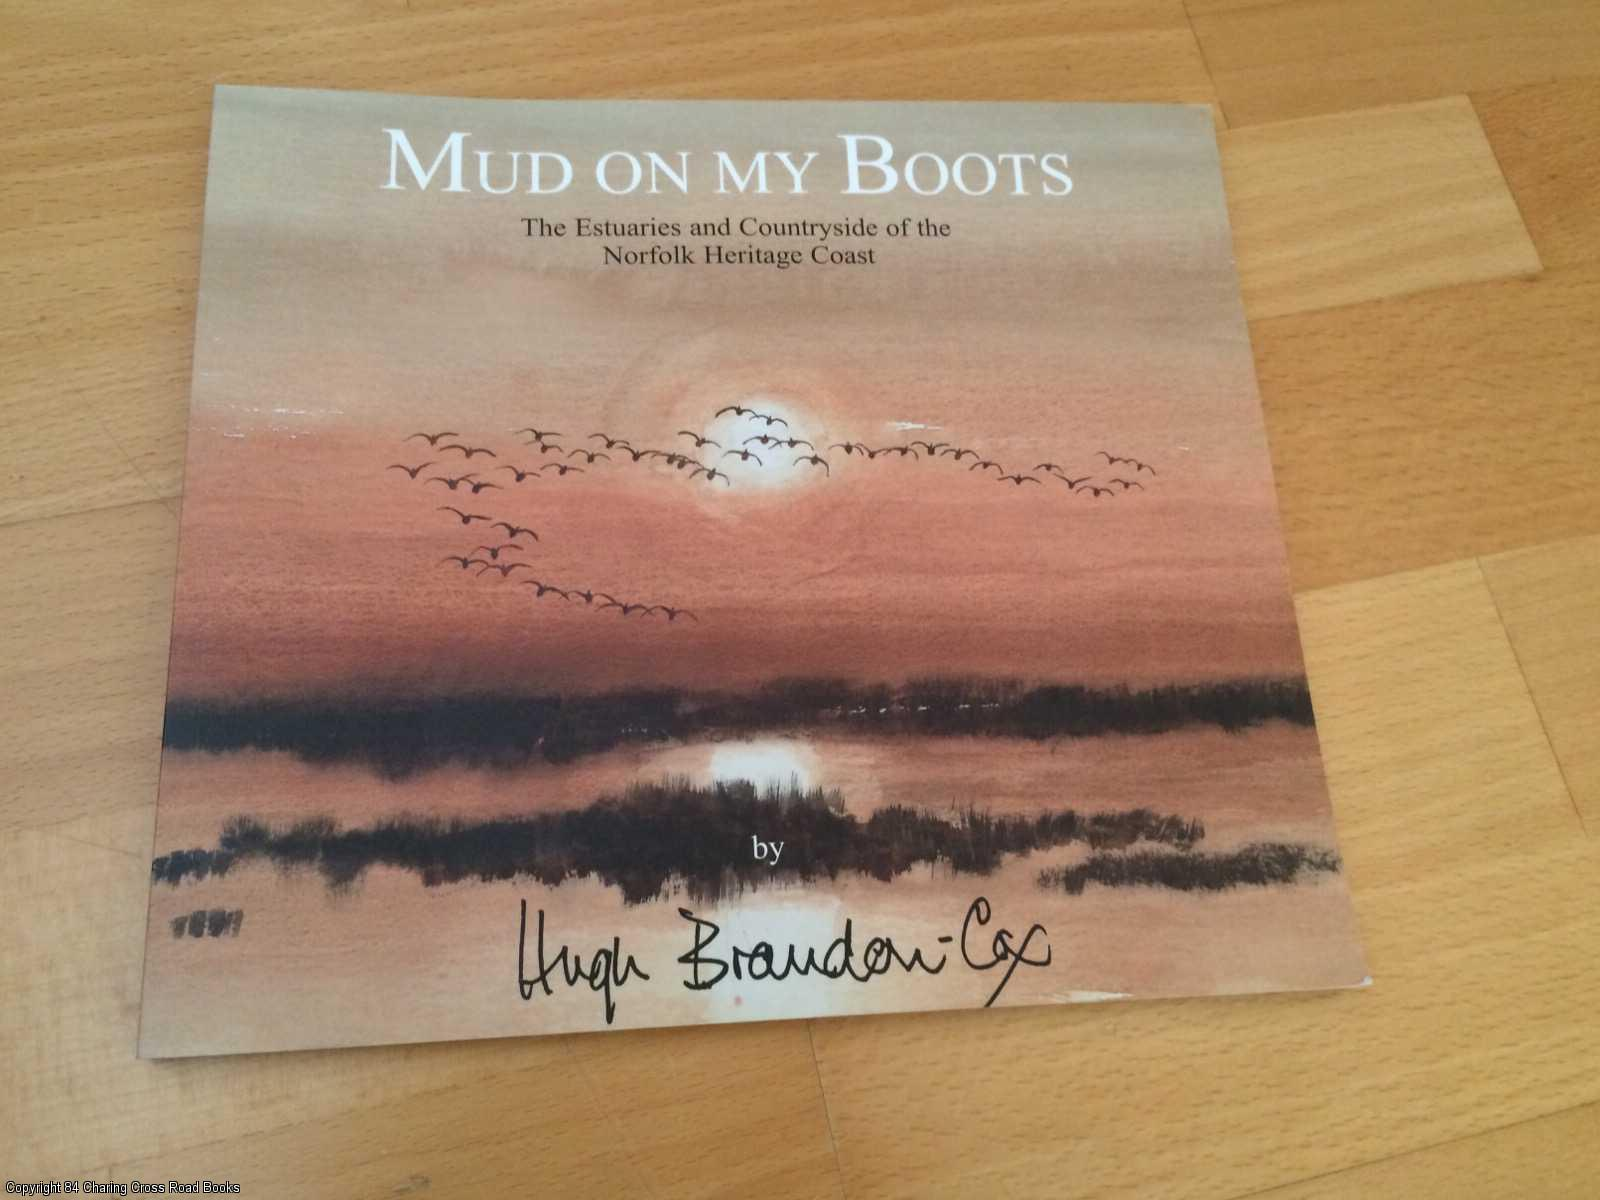 BRANDON-COX, HUGH - Mud on My Boots: The Estuaries and Countryside of the Norfolk Heritage Coast